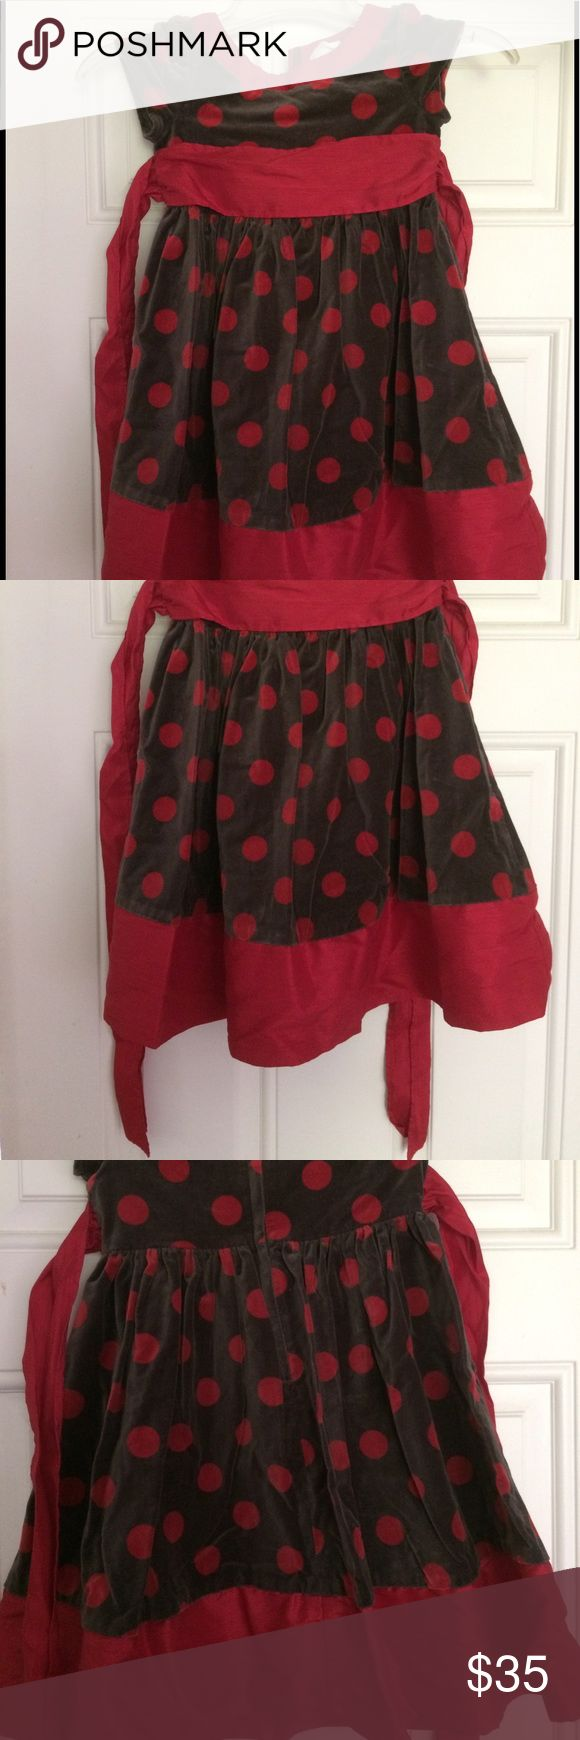 EUC American Girl/Bitty Baby Girls Holiday Dress Gorgeous velvet dress. Grey with red polka dots, satin ribbon. EUC-I cut off the tag as it bothered my daughter. Size is approximately 6/7. Worn twice. American Girl Dresses Formal